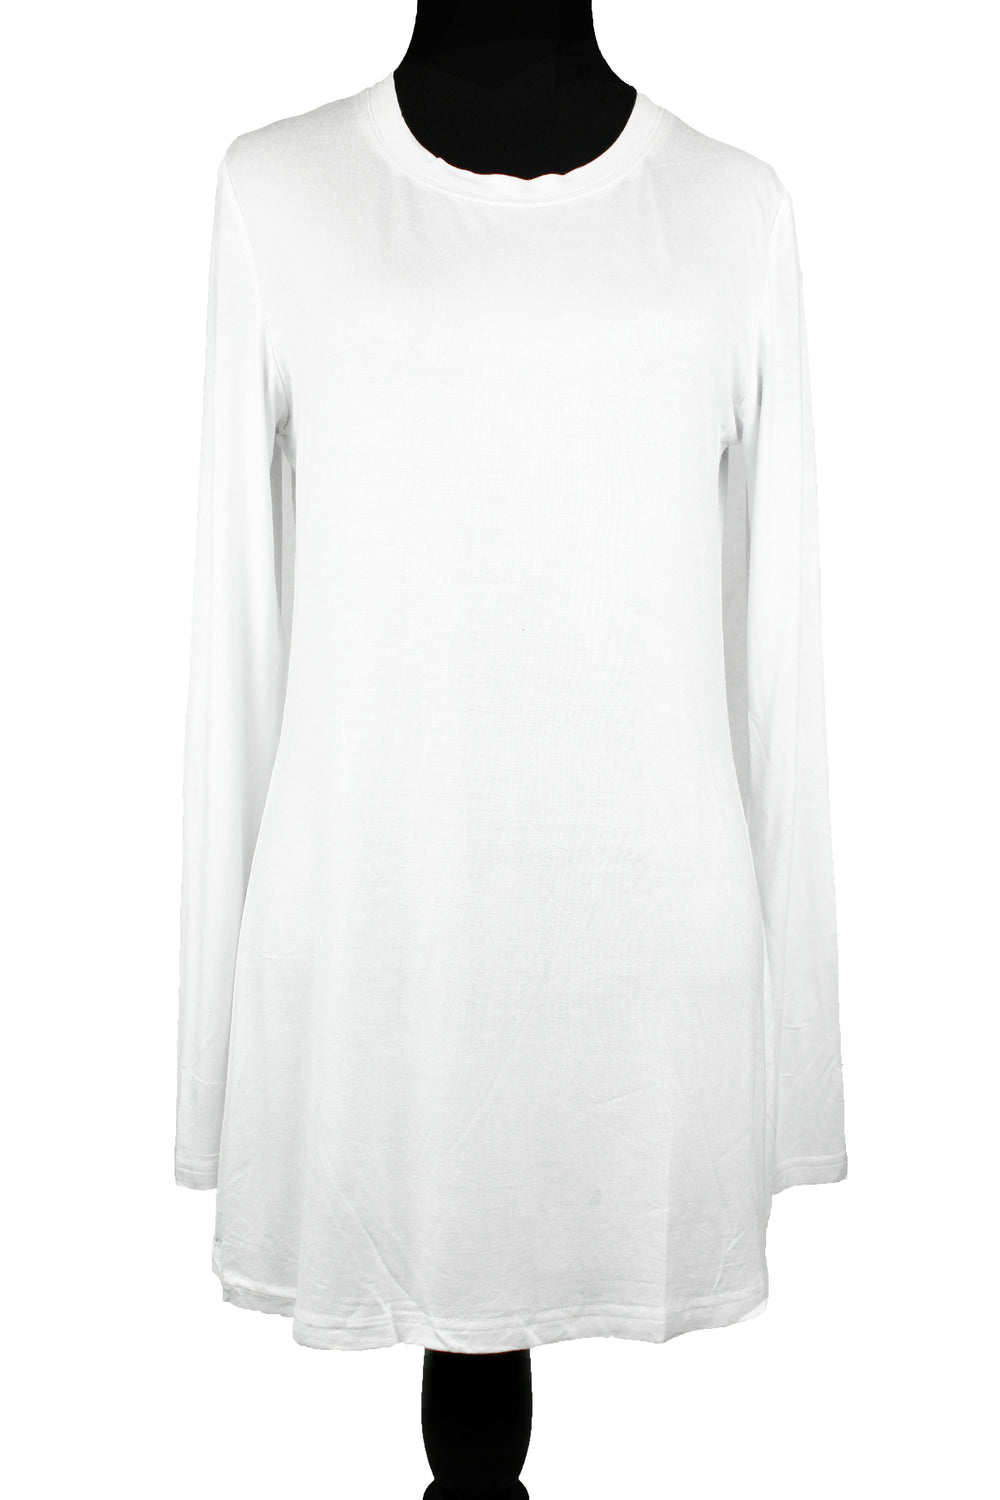 Long Sleeve Basic Top - White